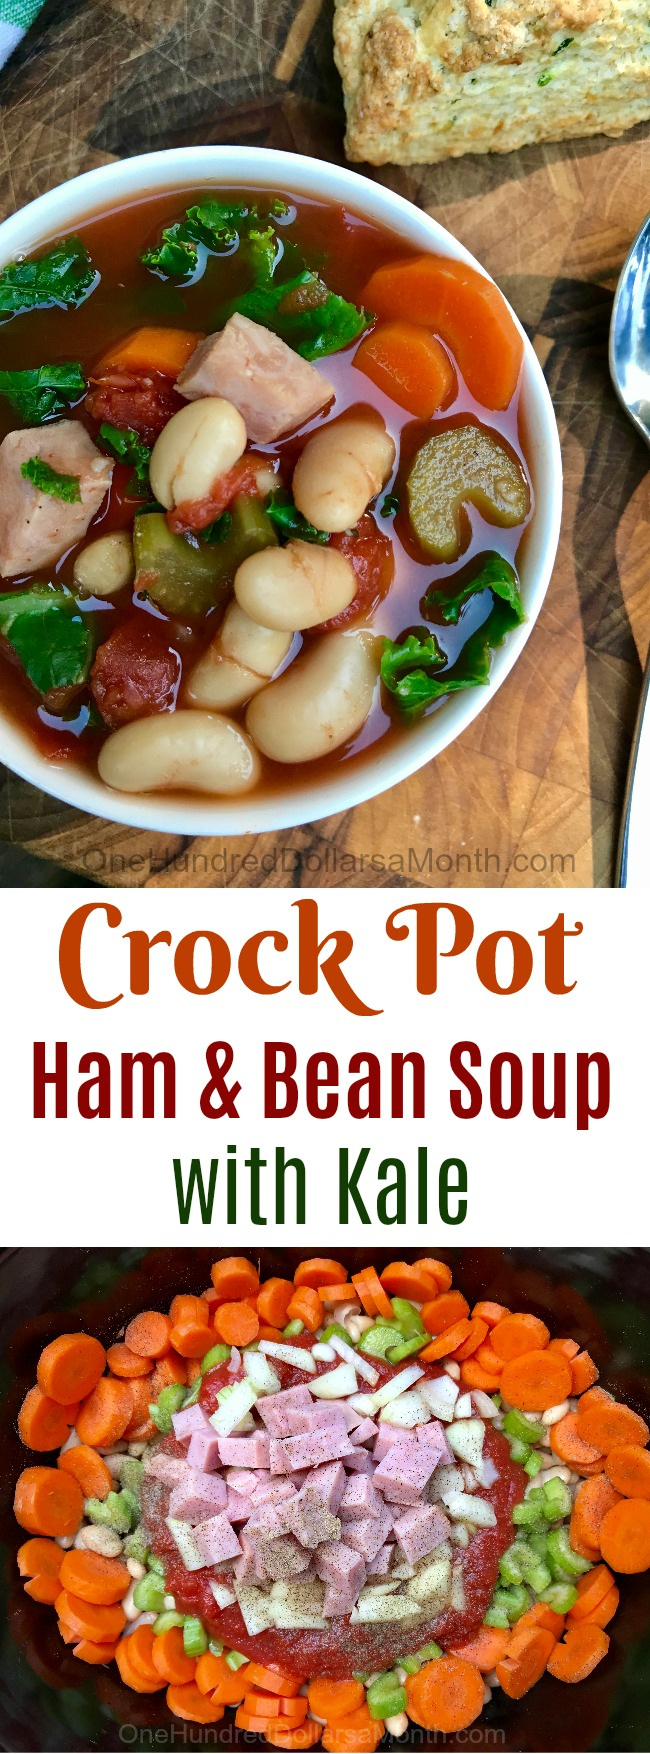 Slow Cooker Ham and Bean Soup with Kale